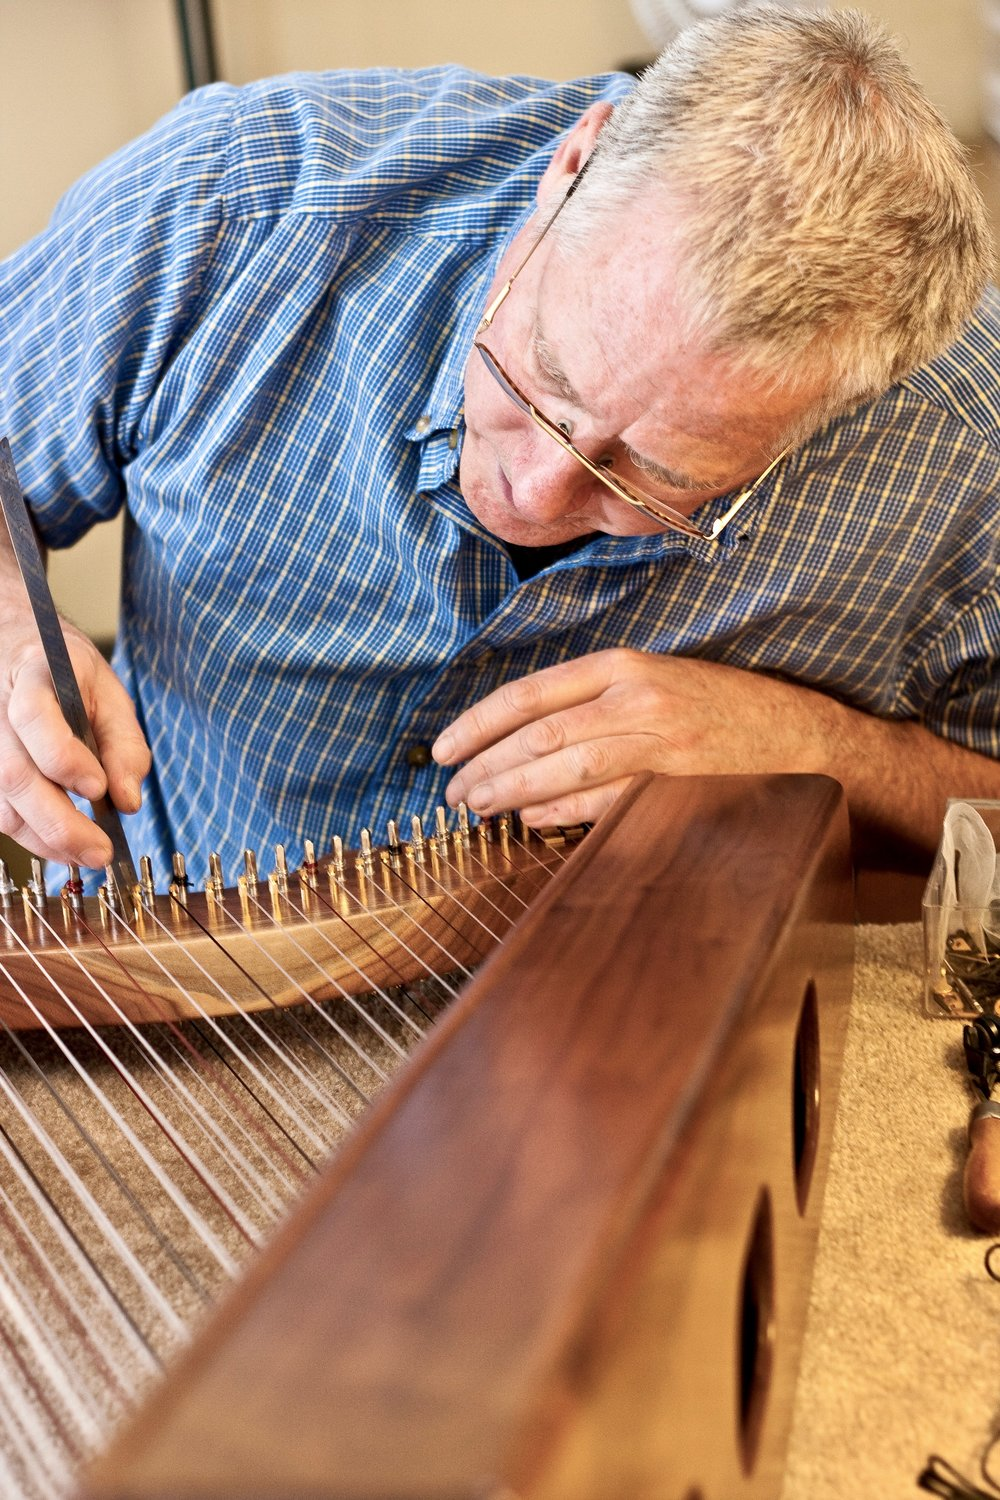 Master luthier, William Rees has been building harps since 1972.